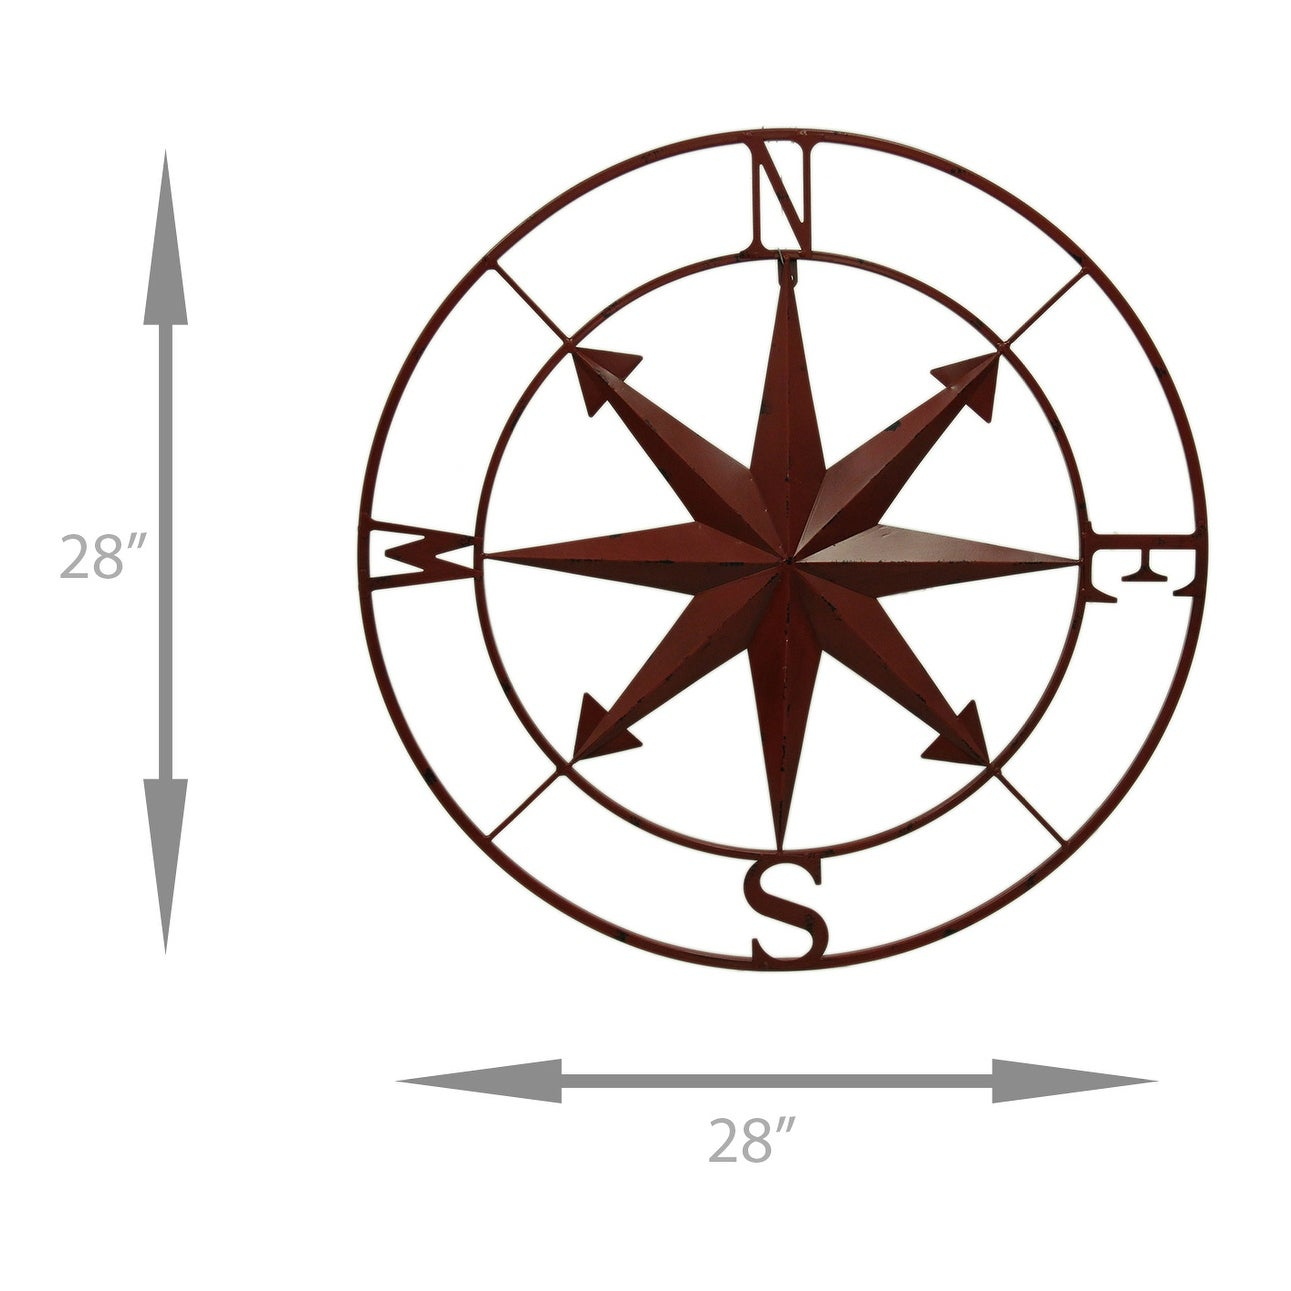 Distressed Metal Indoor/outdoor Compass Rose Wall Hanging 28 Inch - 28 X 28  X 0.5 Inches intended for Outdoor Metal Wall Compass (Image 16 of 30)